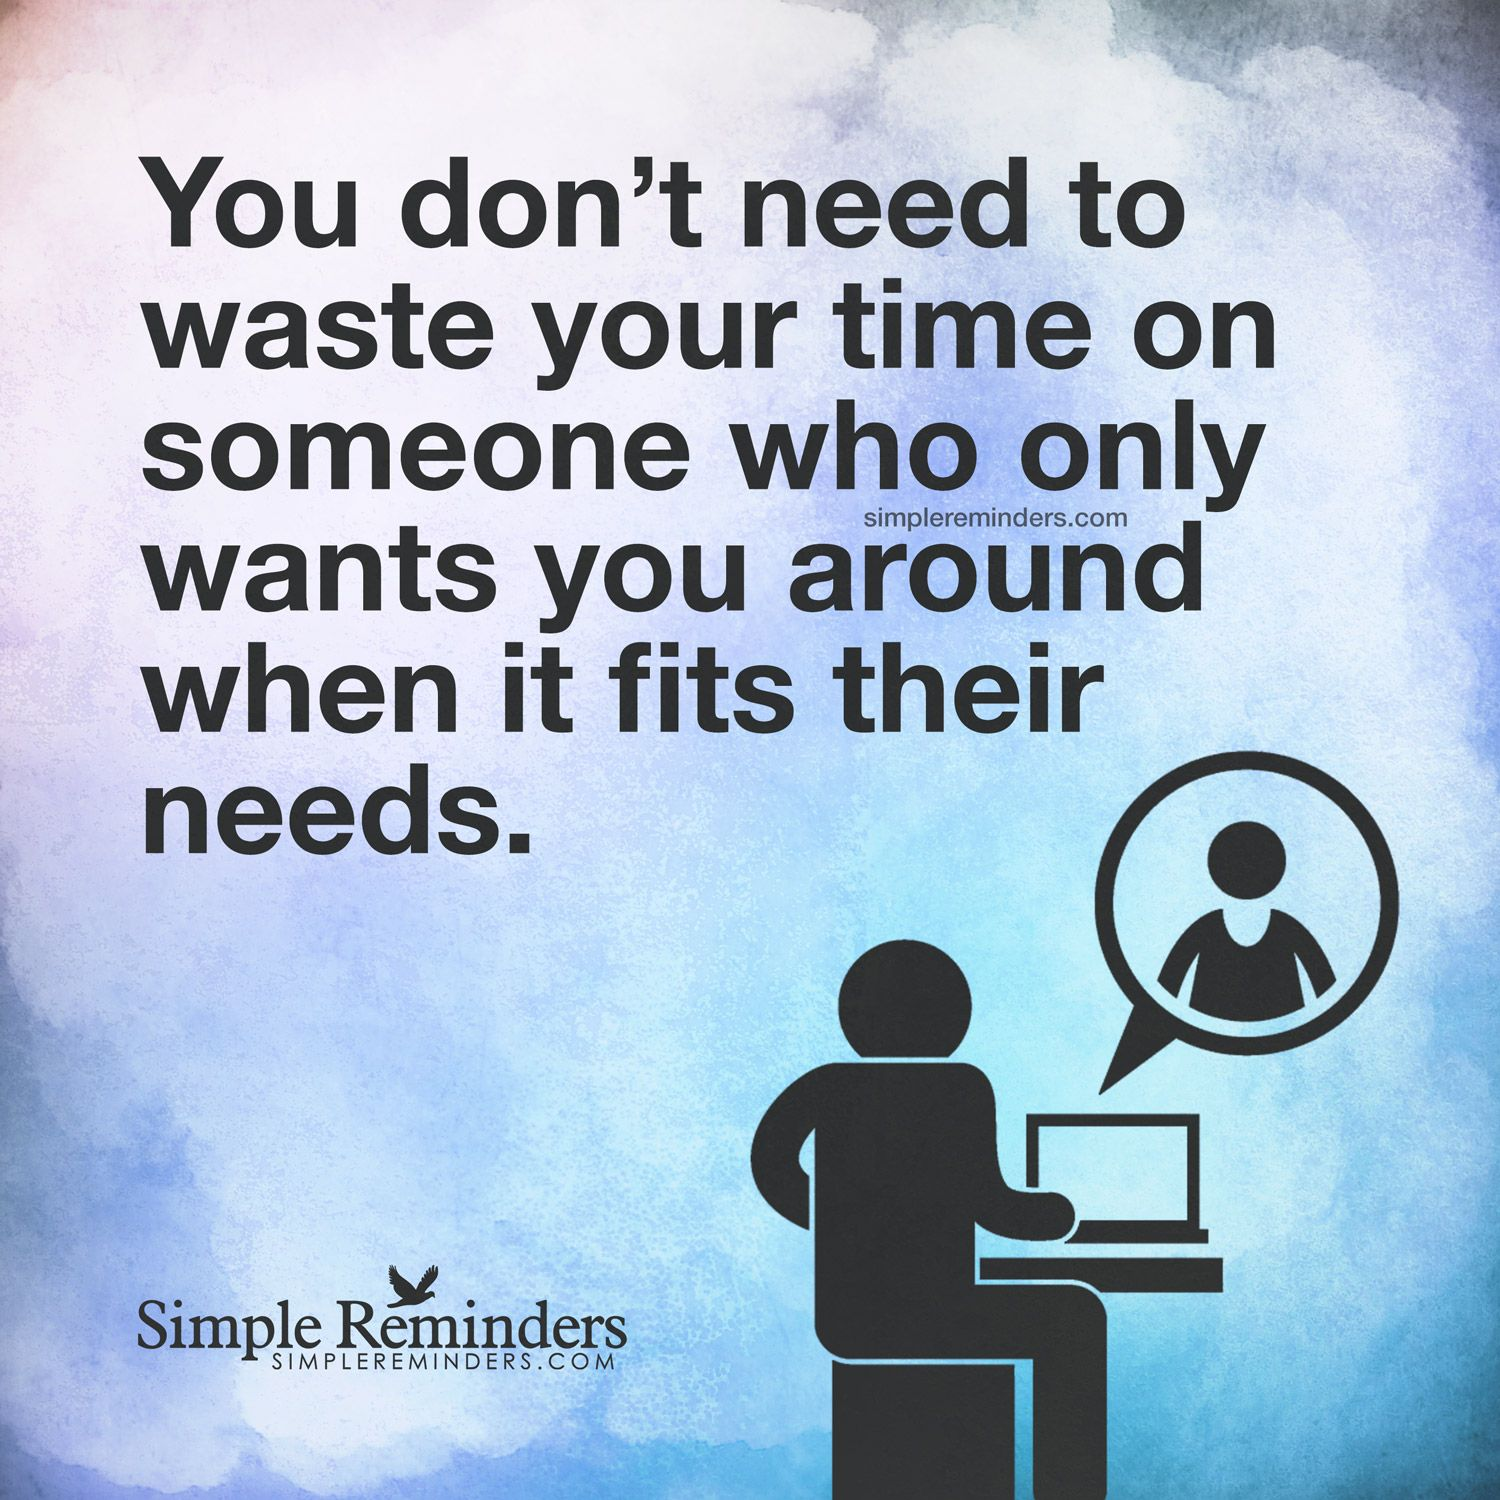 In Time Of Need Quotes: Find True Friends You Don't Need To Waste Your Time On